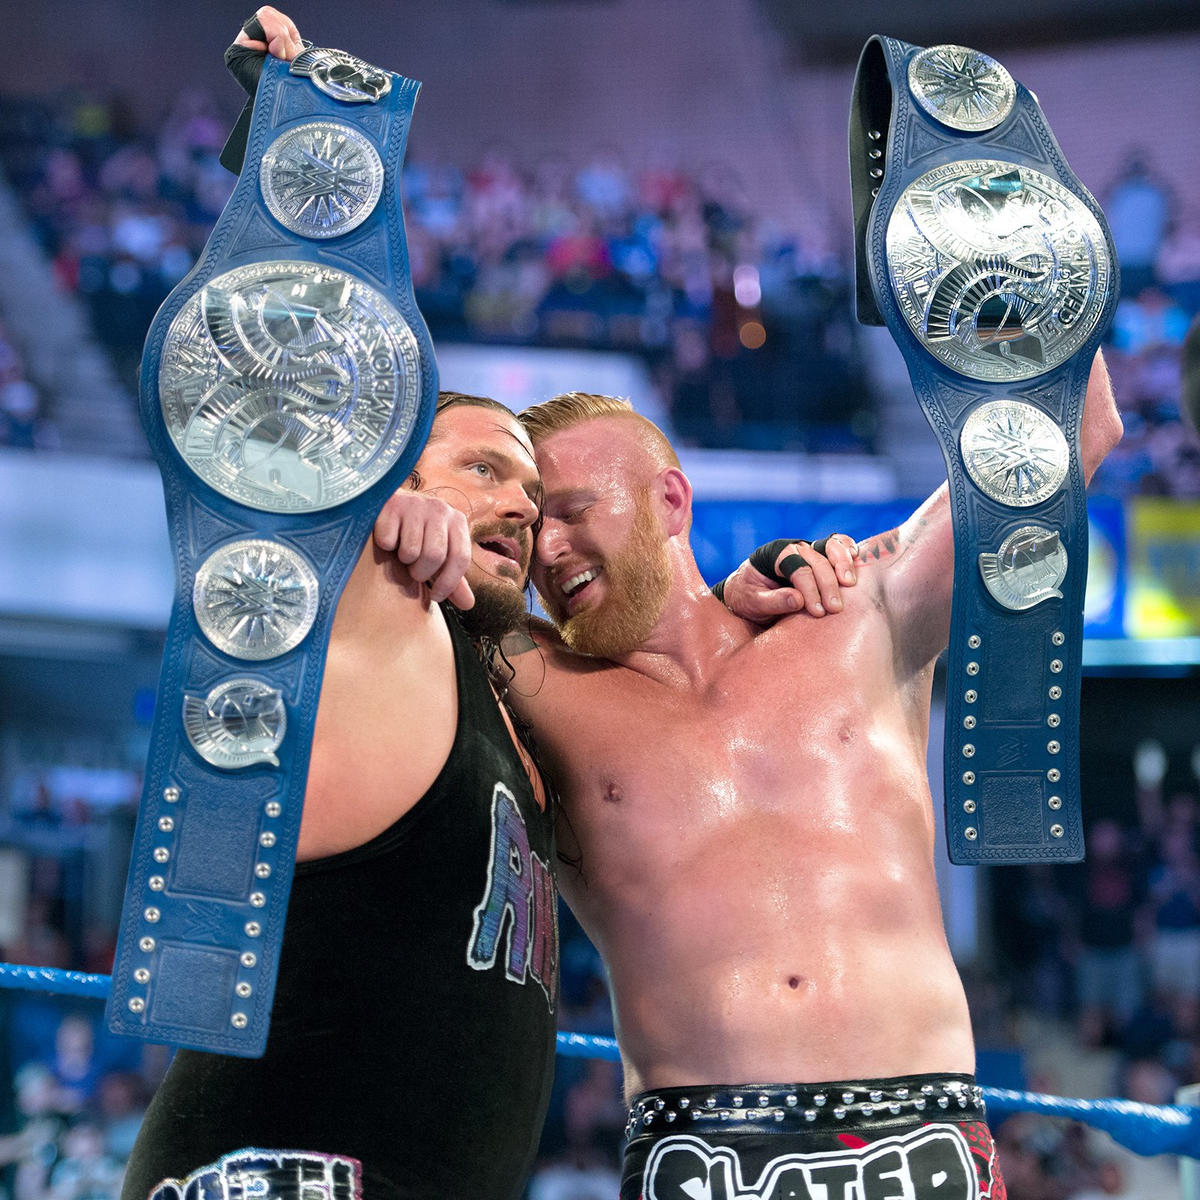 Rhyno & Heath Slater win SmackDown Tag Team Championships: Backlash 2016